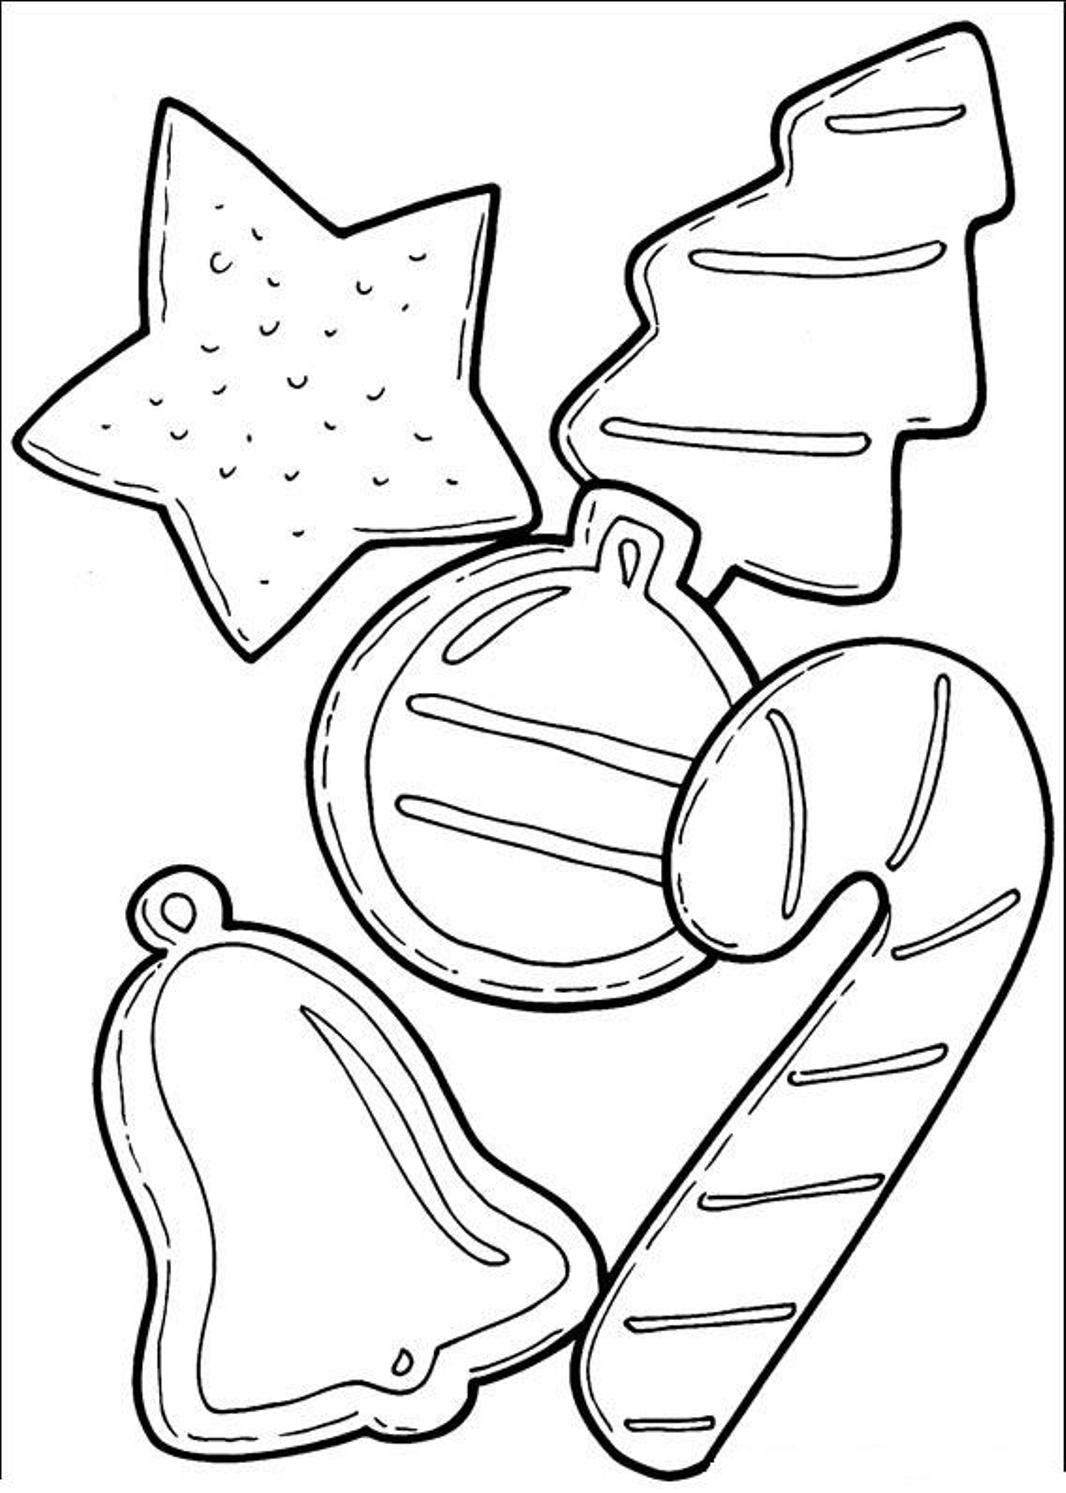 Cookies Coloring Page Coloring Home Cookies Coloring Page